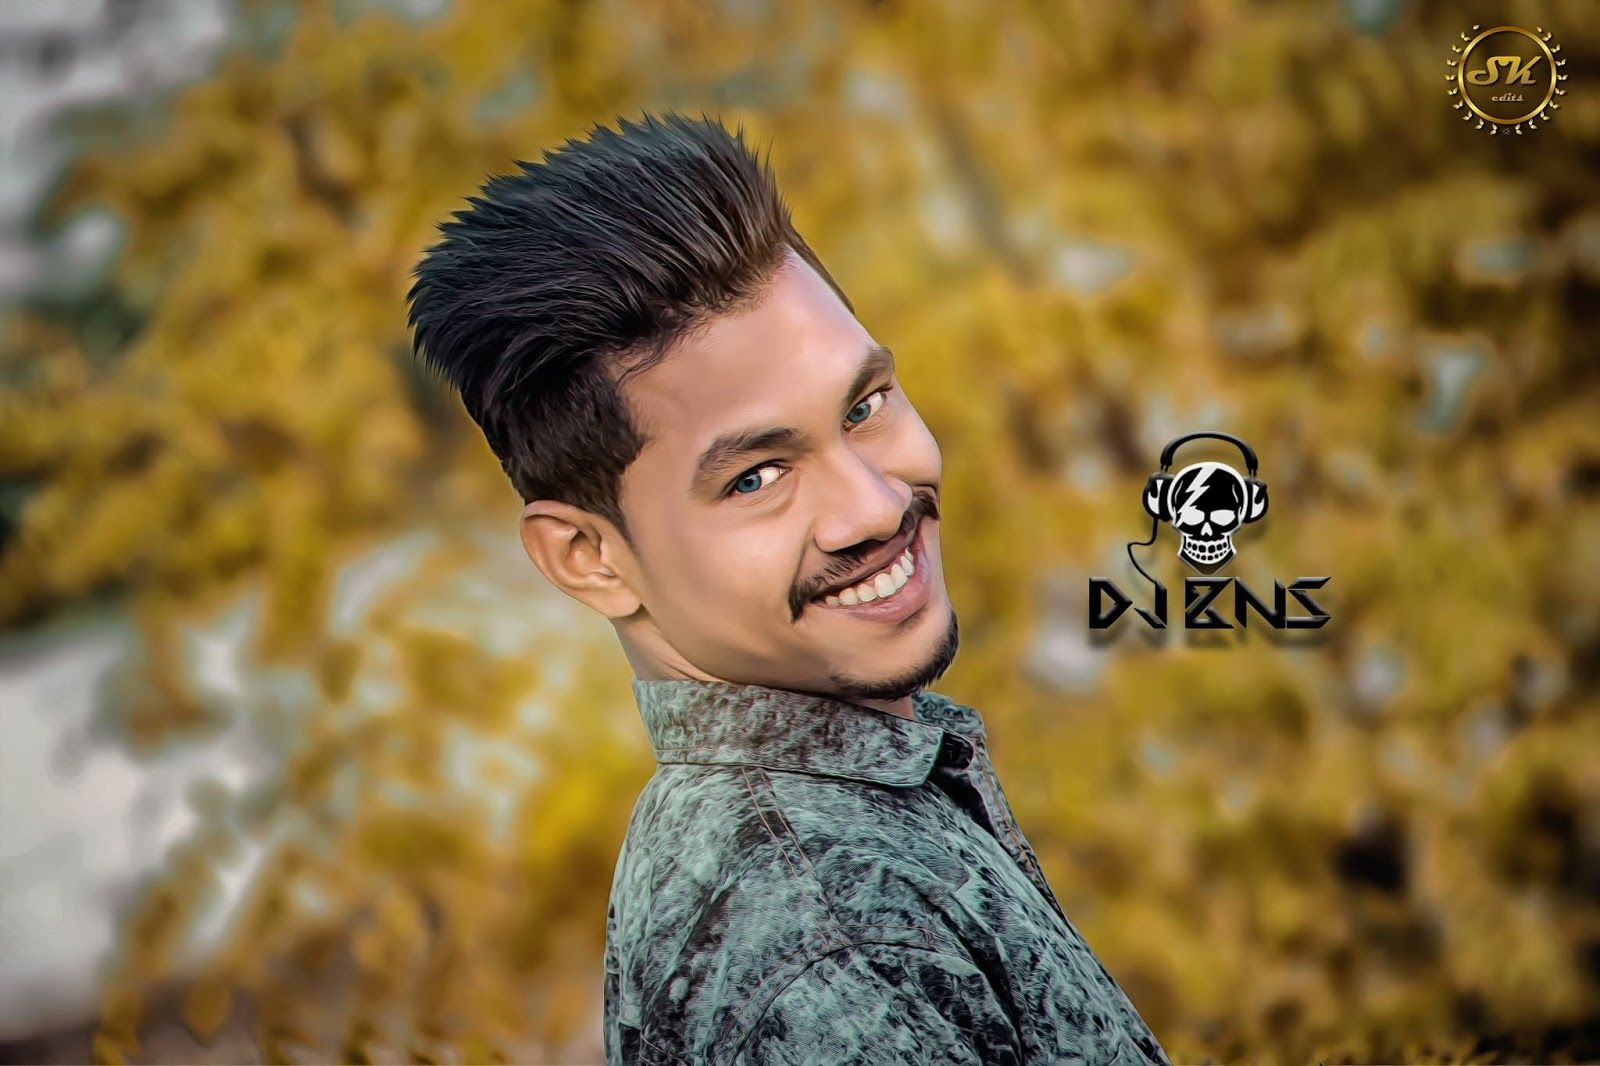 Telugu Dj Songs 2018 Download Naa Songs | Songs in 2019 | Dj songs